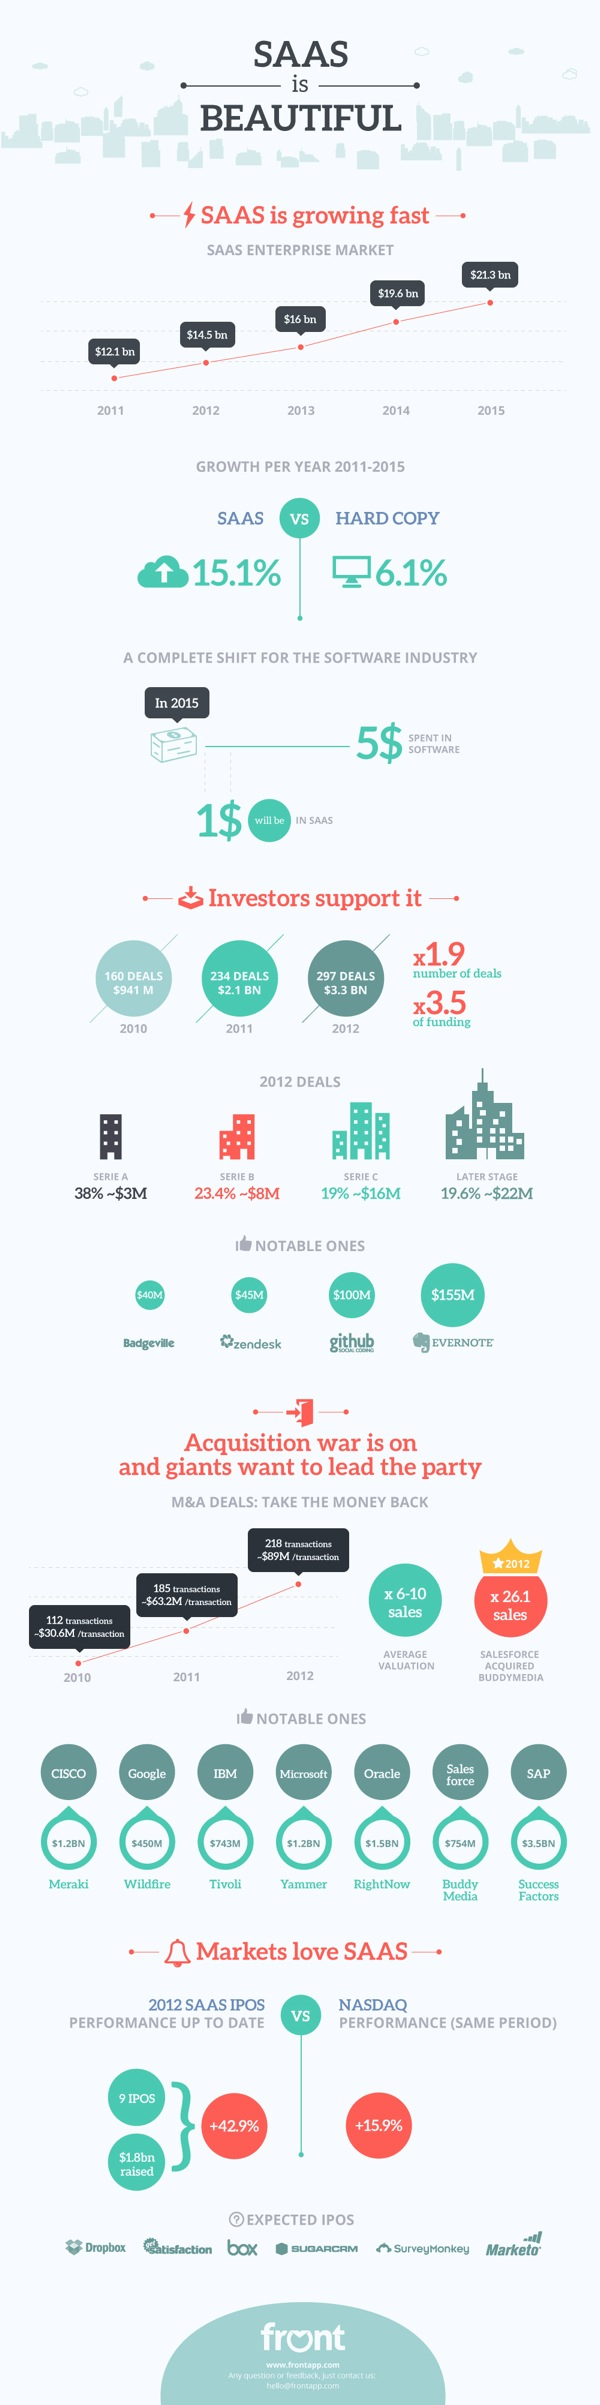 SAAS is Beautiful: 10 Key Facts About The Growing SAAS Market